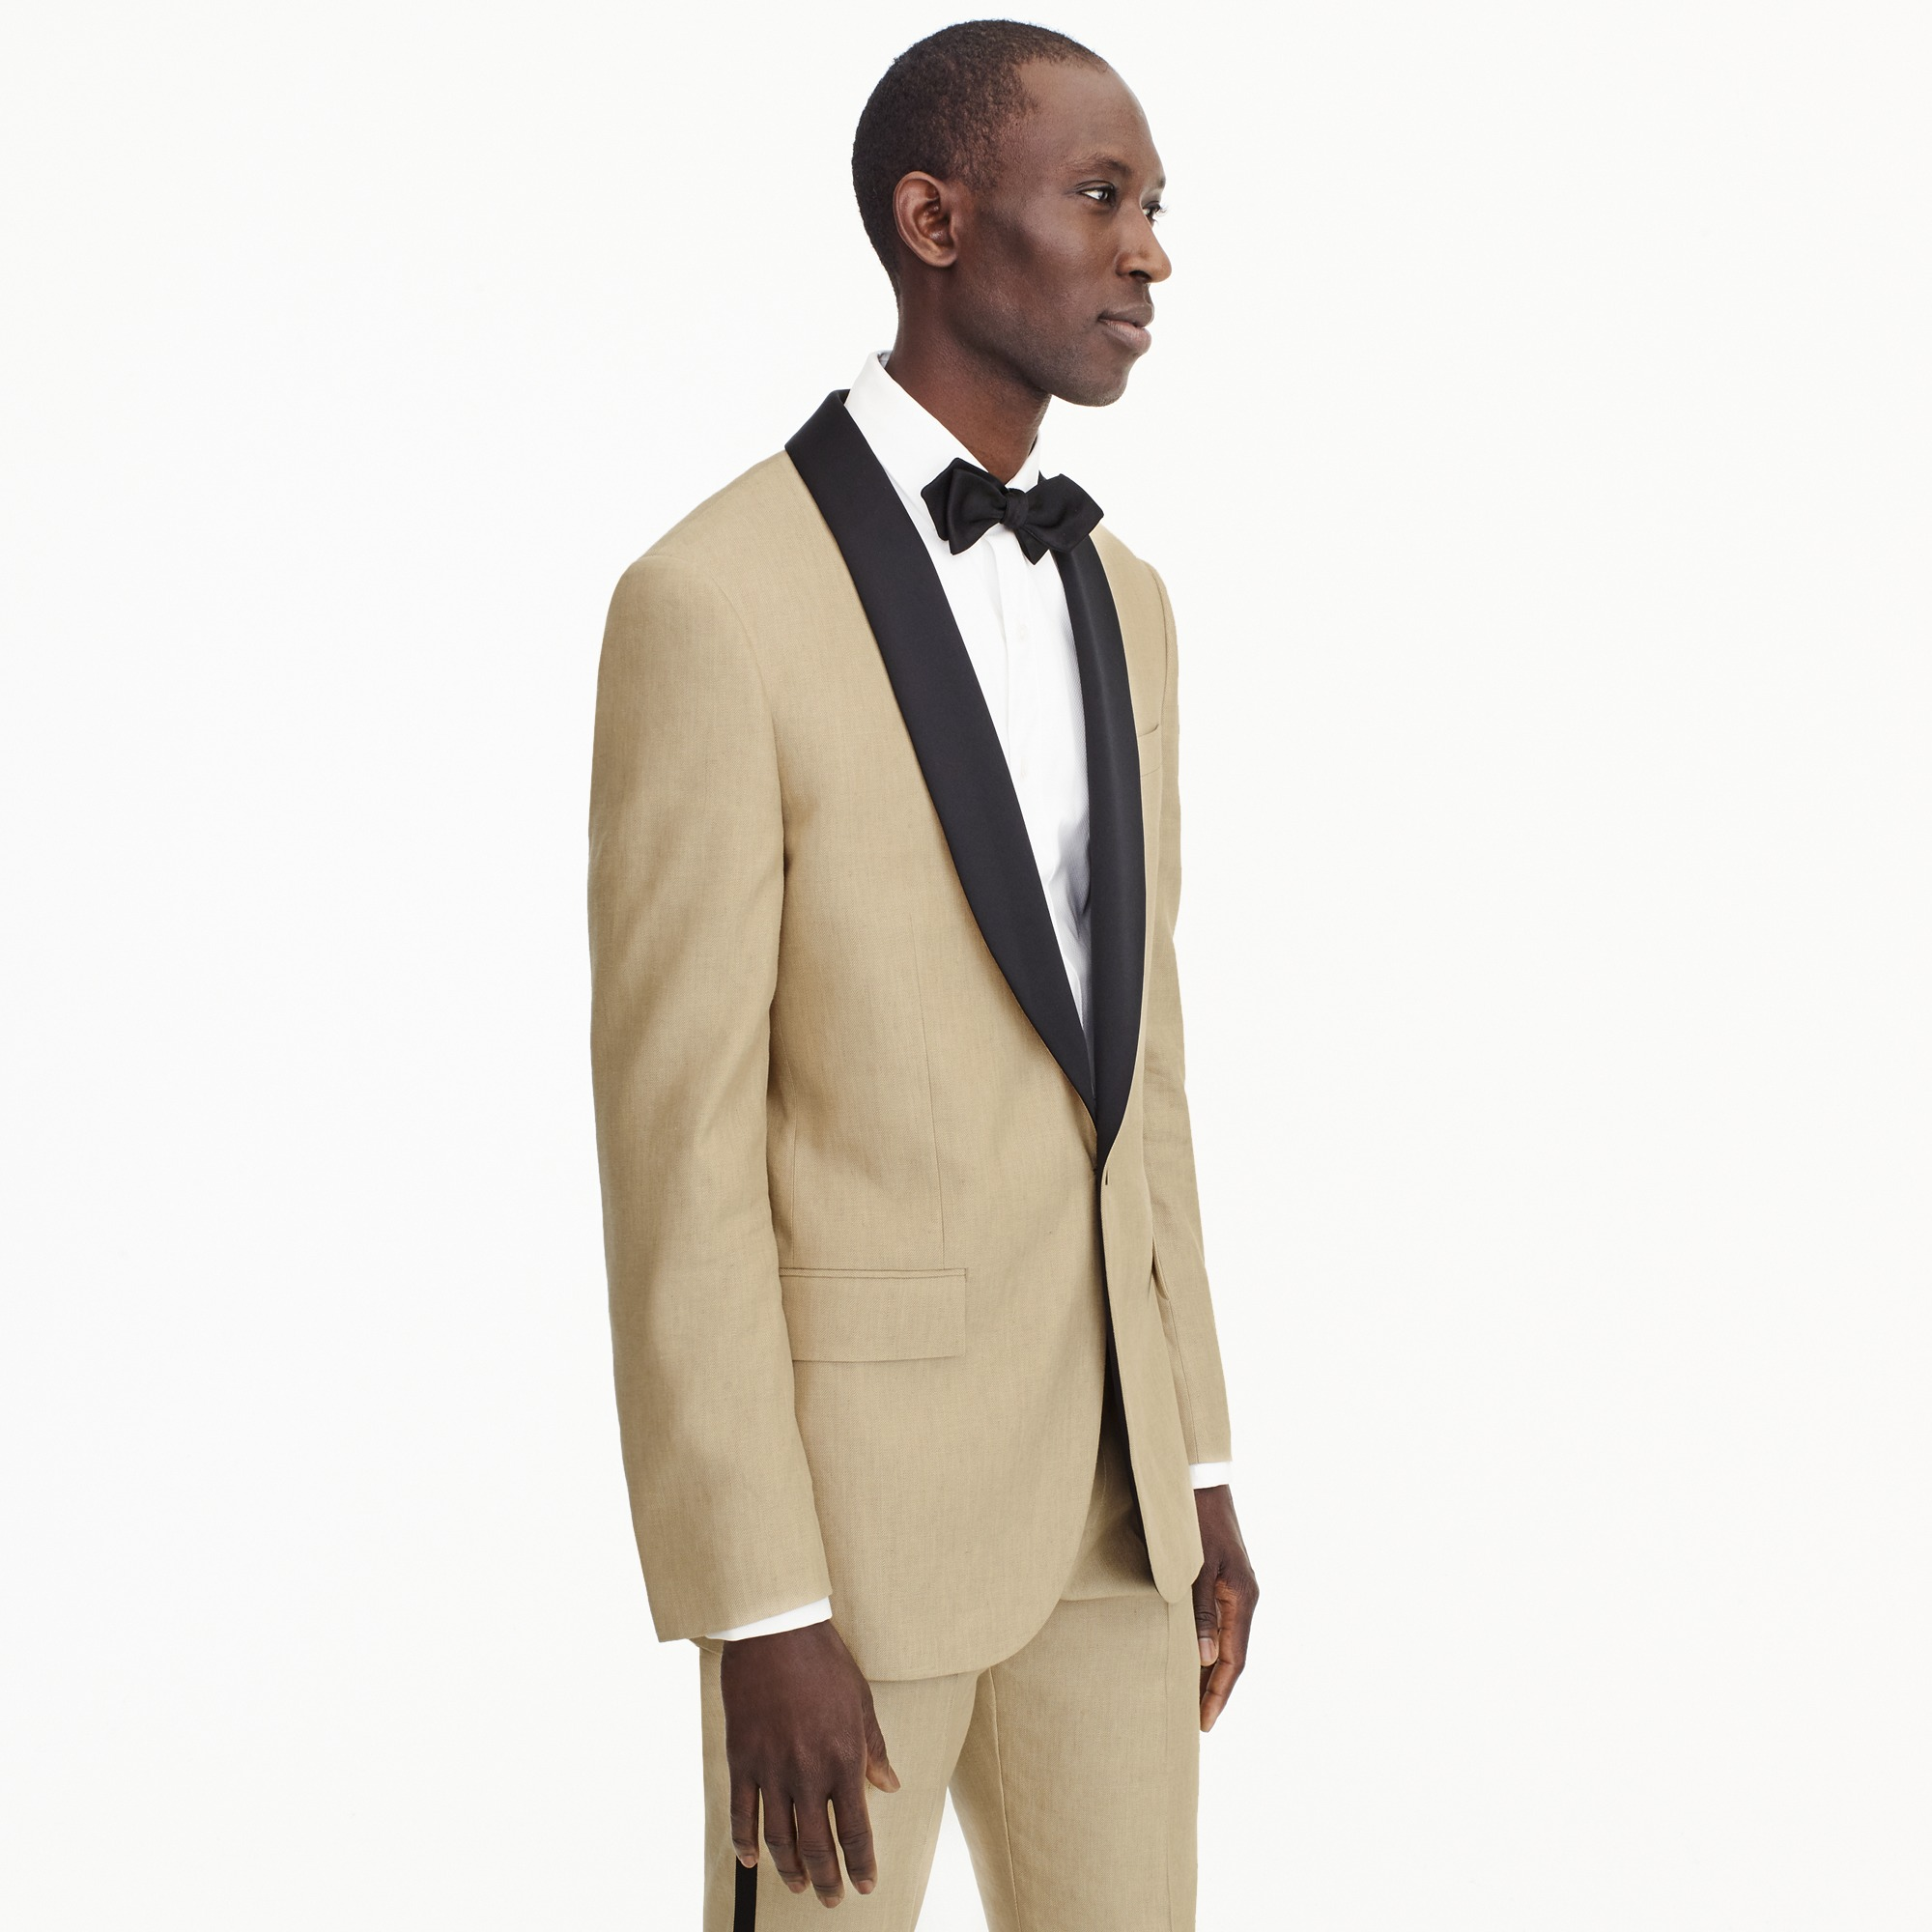 Image 2 for Ludlow Slim-fit shawl-collar tuxedo jacket in linen-silk